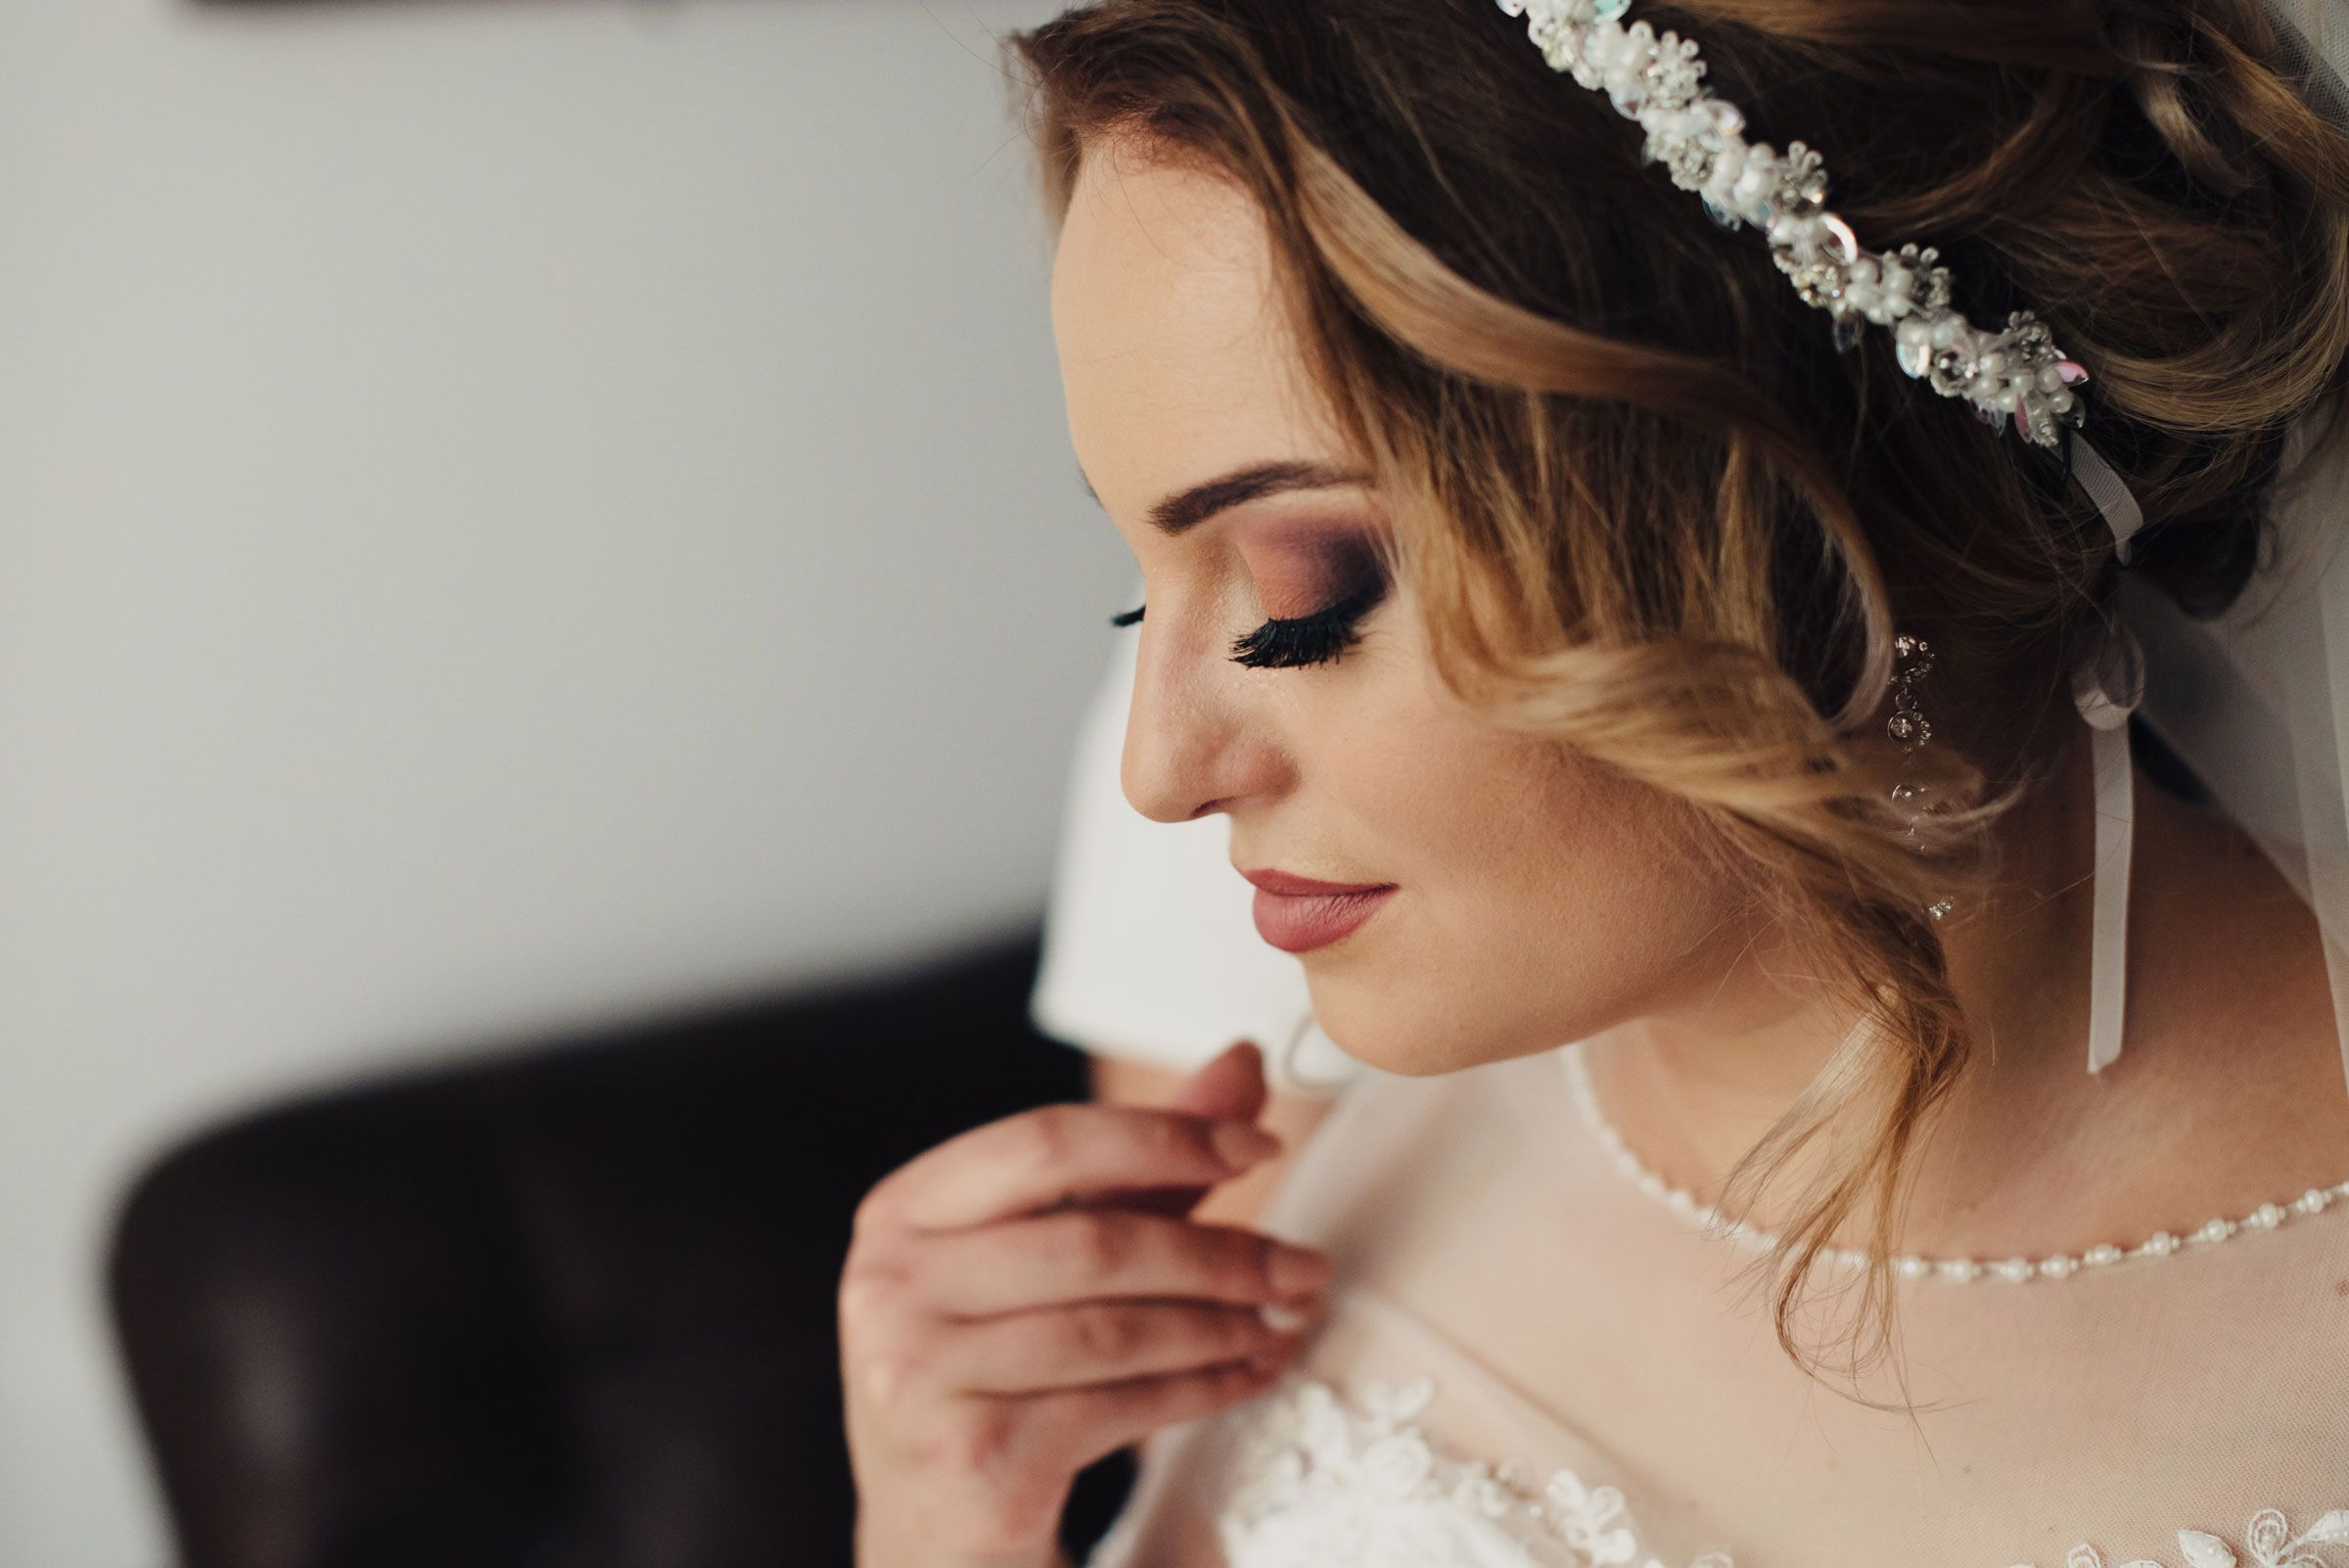 10 questions to ask before hiring your wedding day makeup artist every bride wants to look her absolute best on her wedding day the fear of not looking and feeling like the perfect glowing version of yourself can cause solutioingenieria Gallery